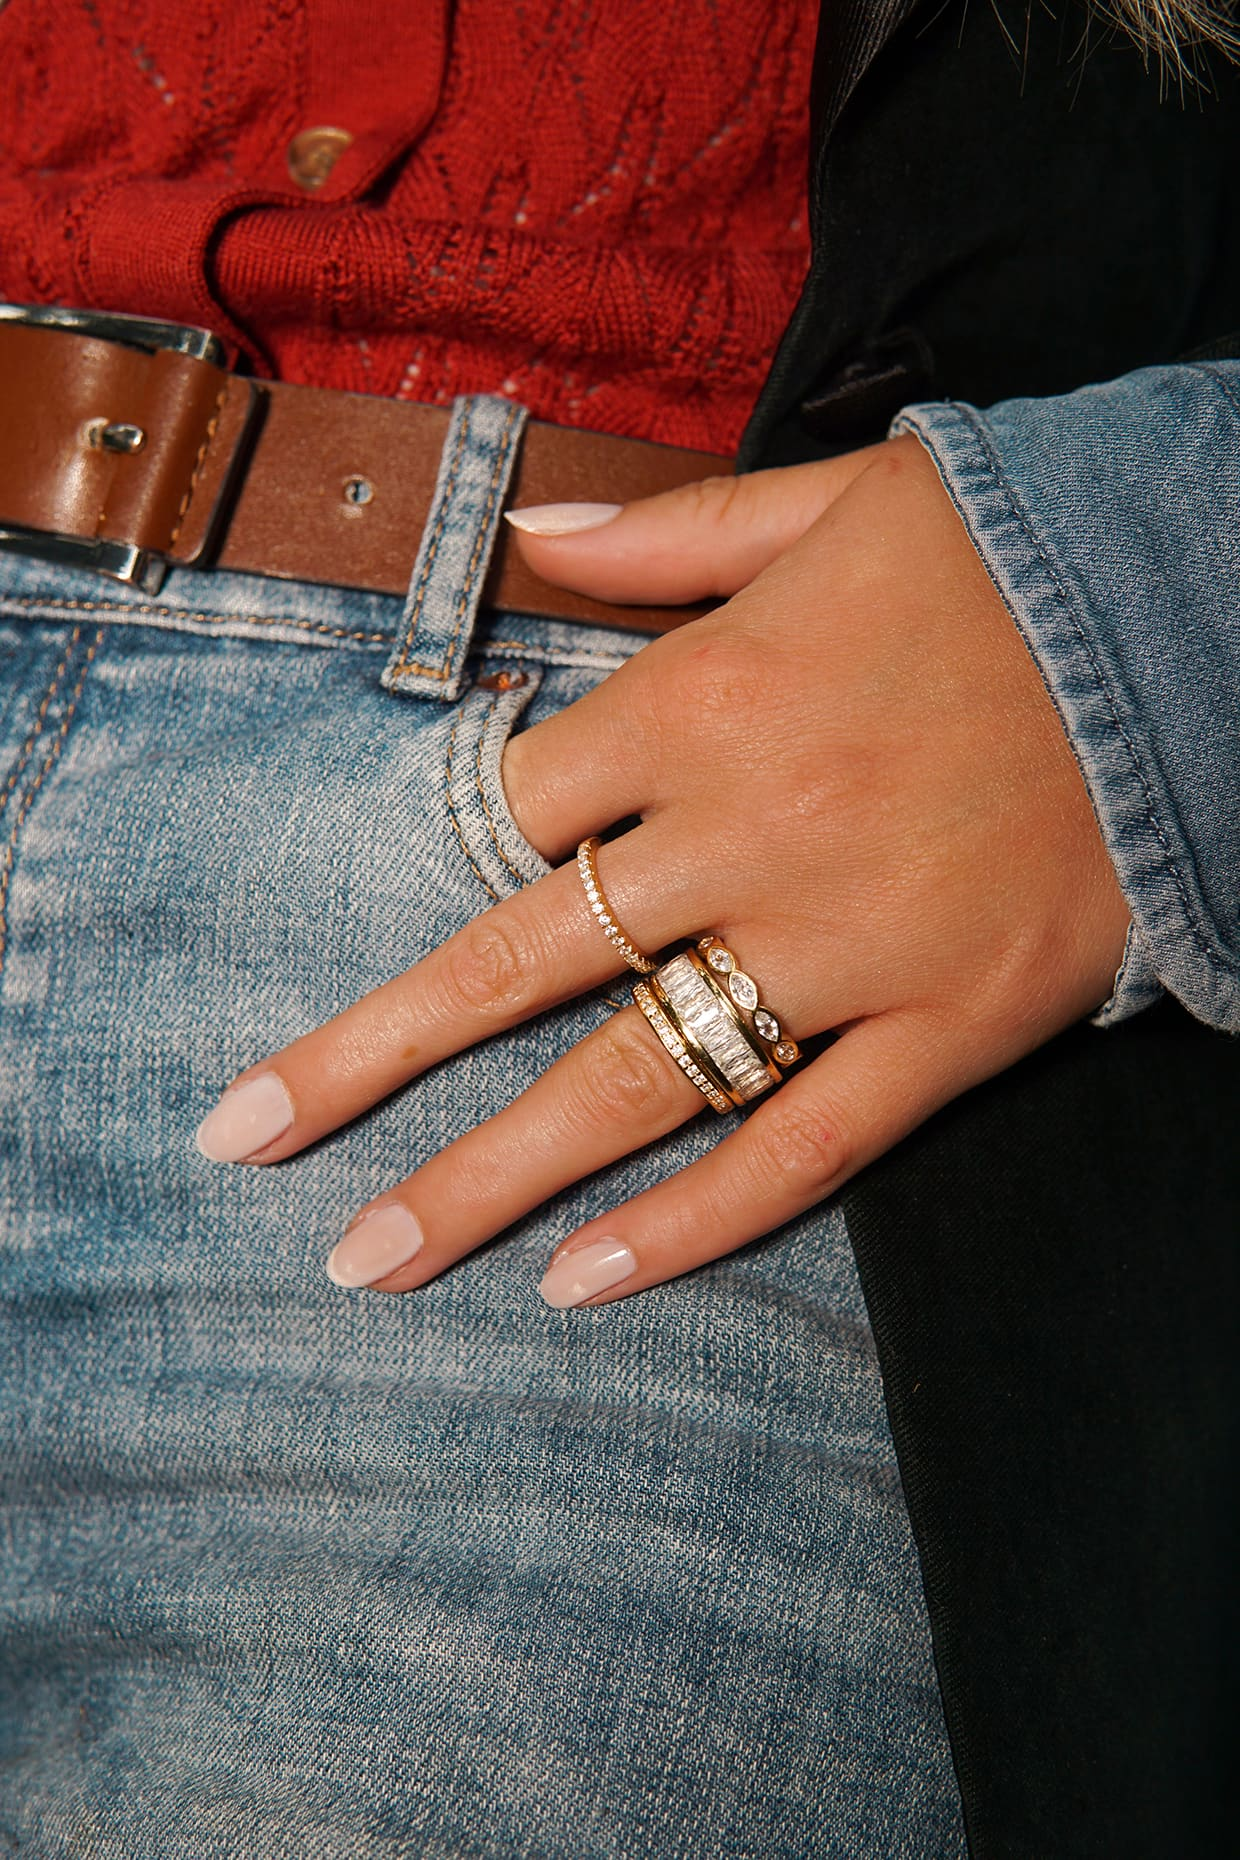 Rings on hand with jeans